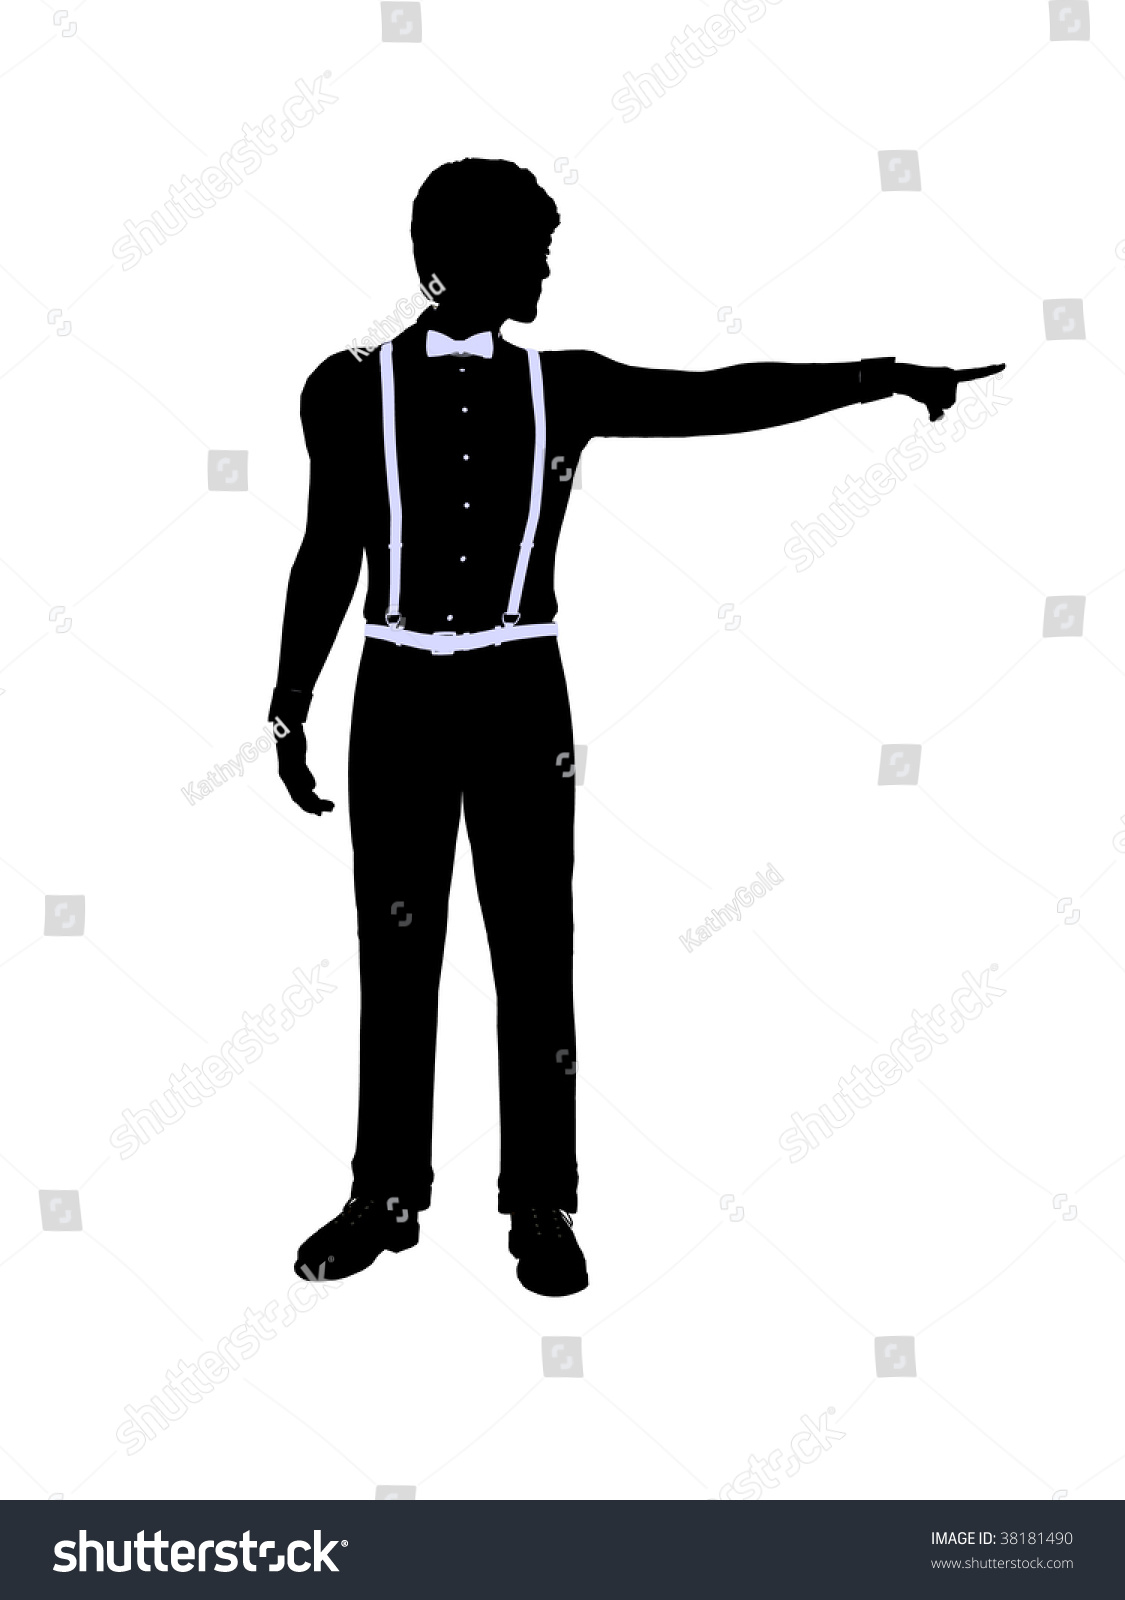 Male Business Silhouette Illustration On White Stock ...